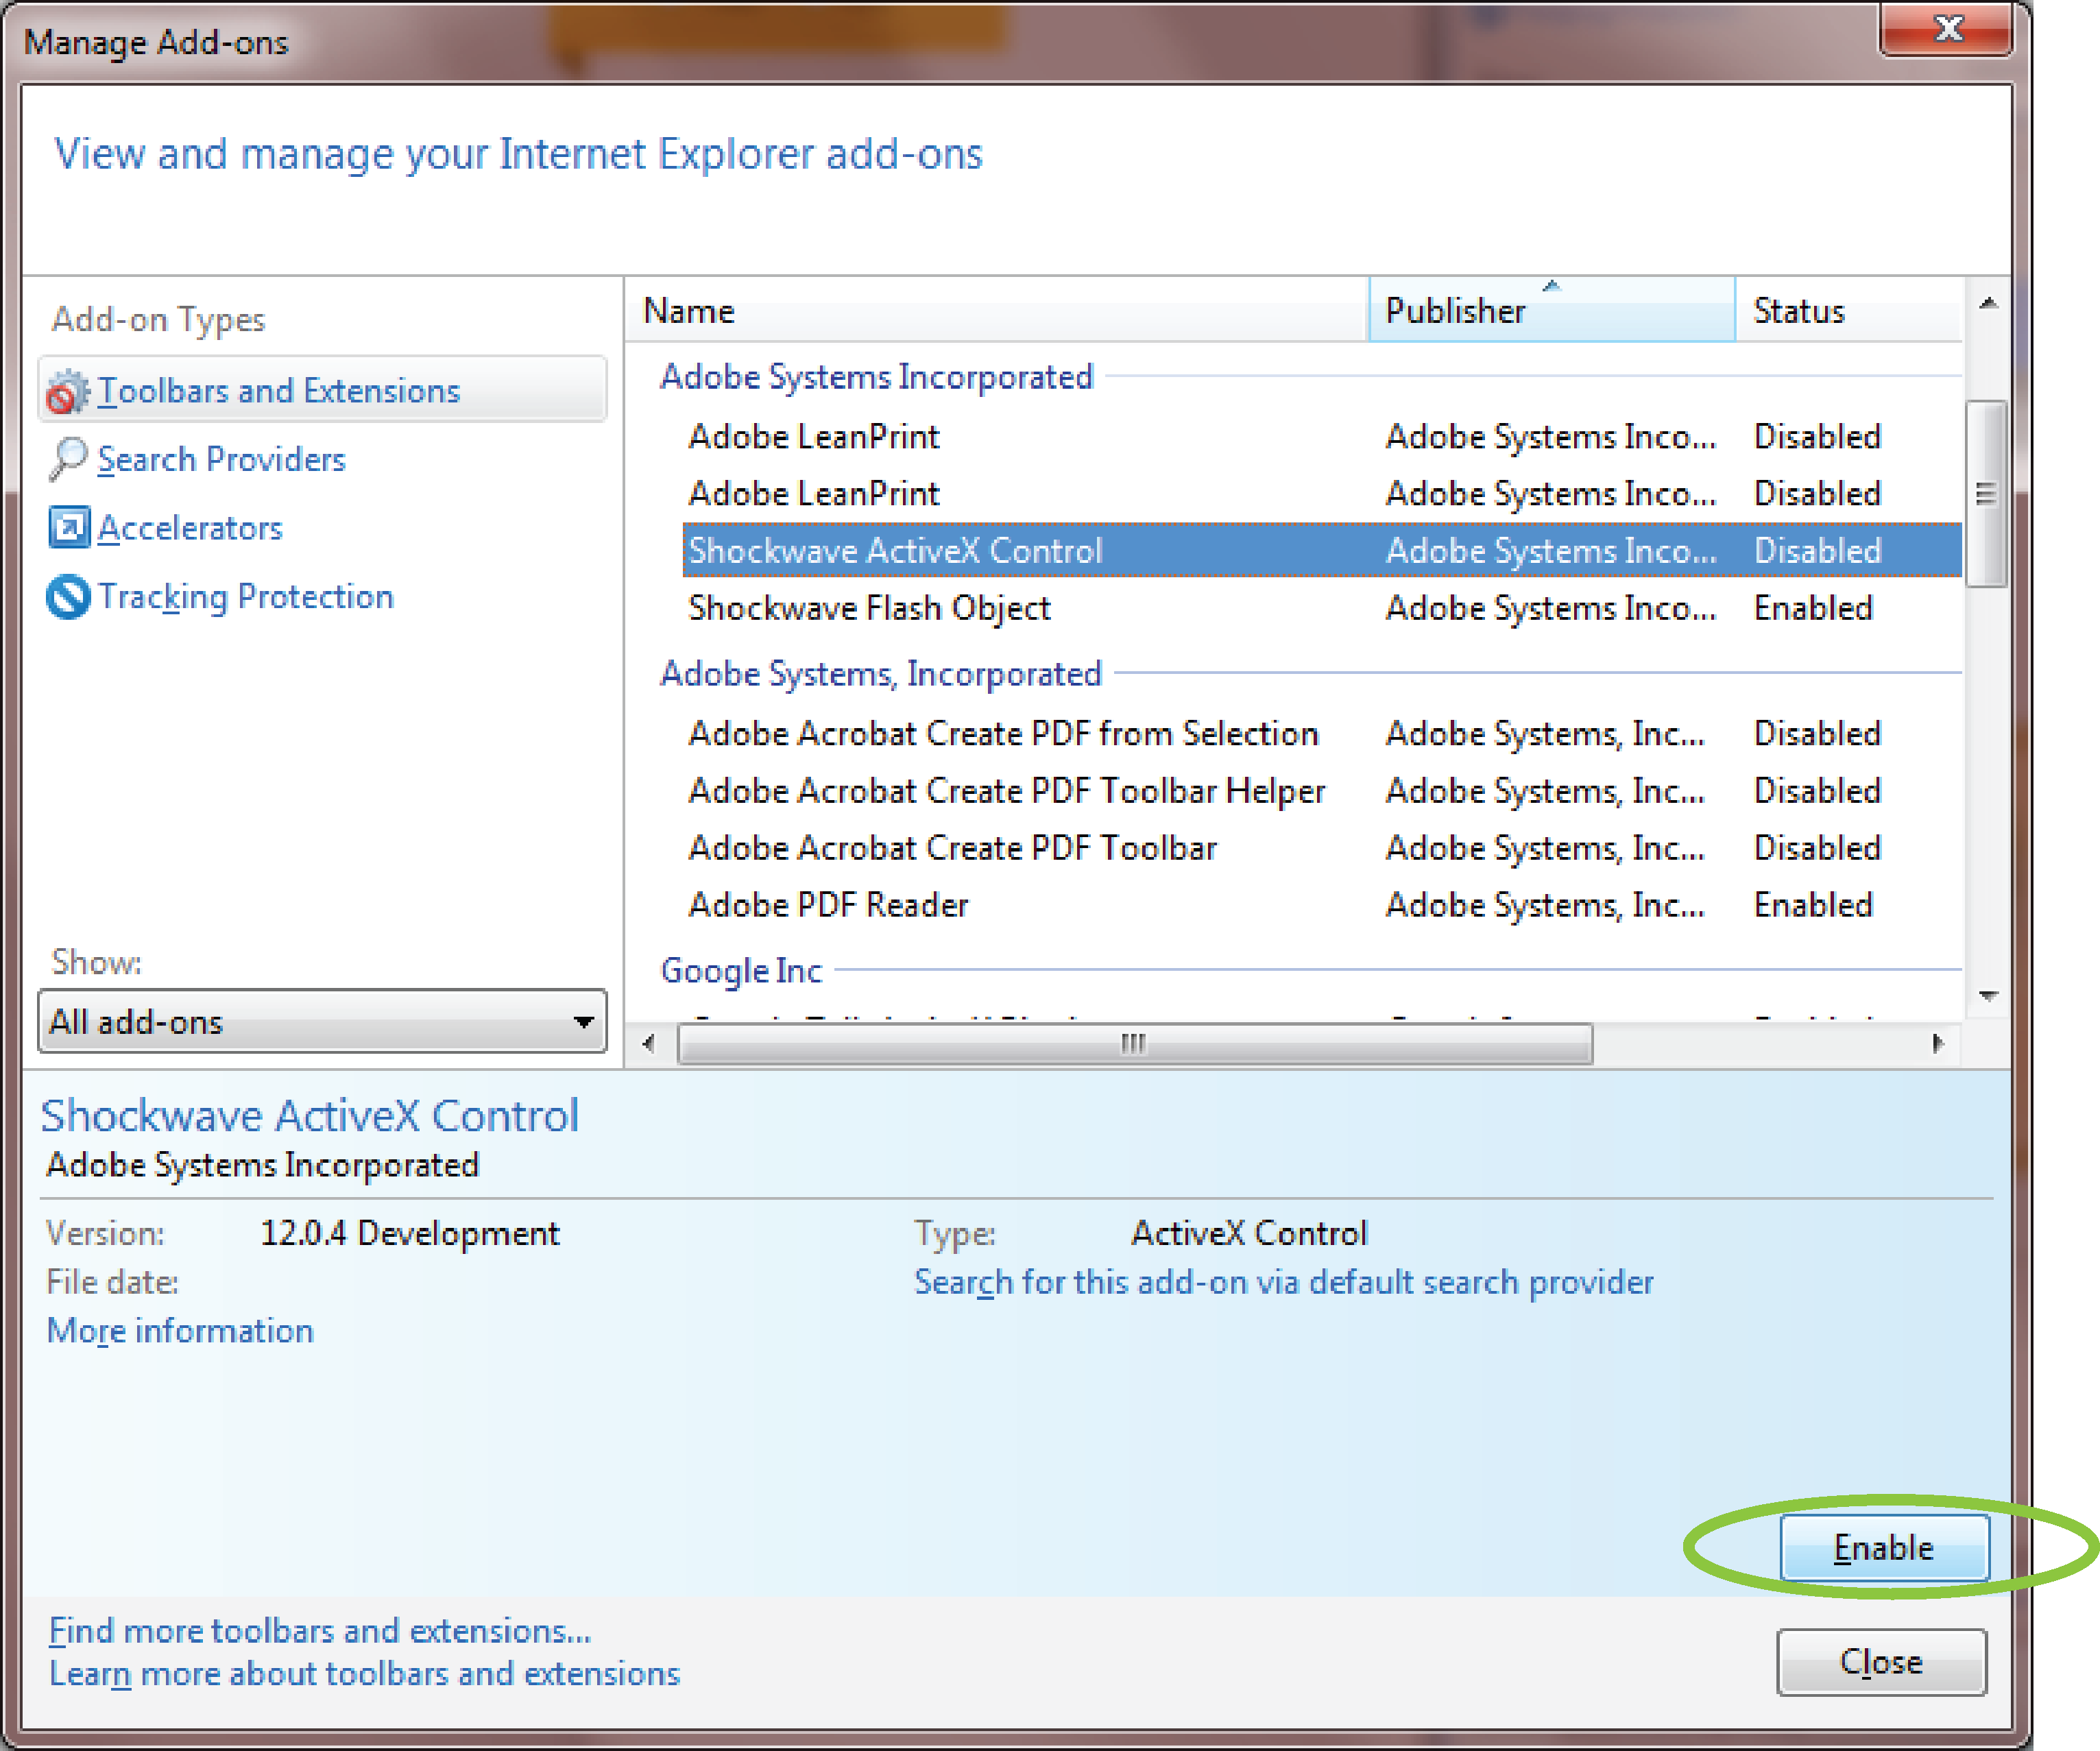 Manage Add-ons dialog box, with Shockwave ActiveX Control highlighted, click Enable